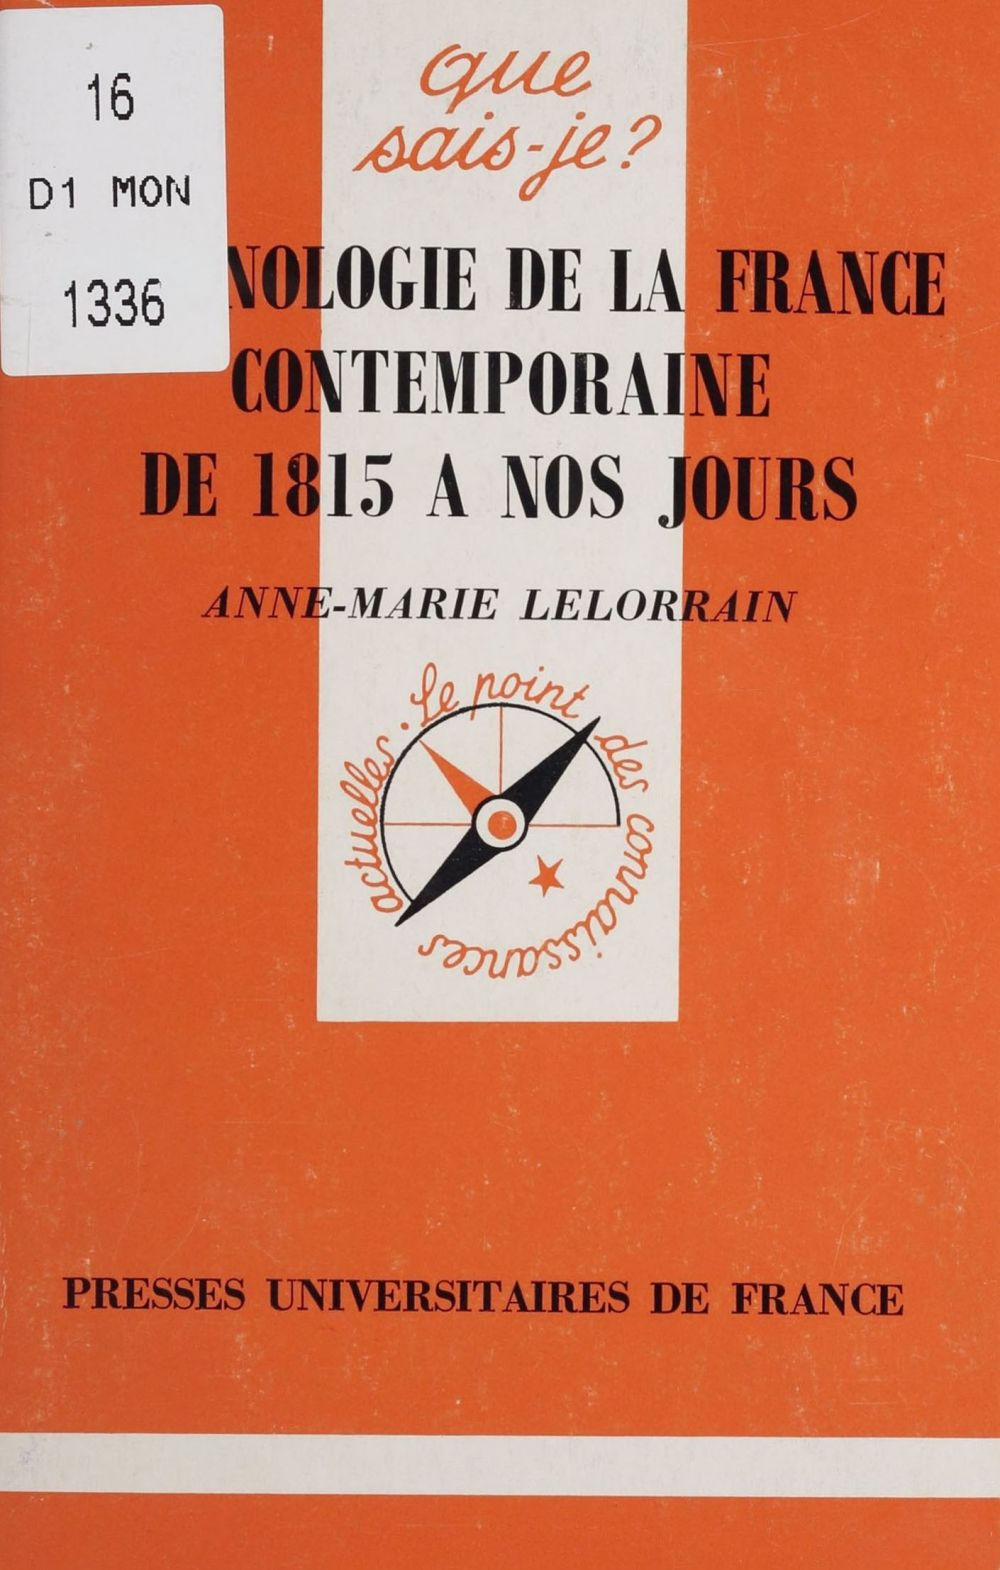 Chronologie de la France contemporaine de 1815 à nos jours